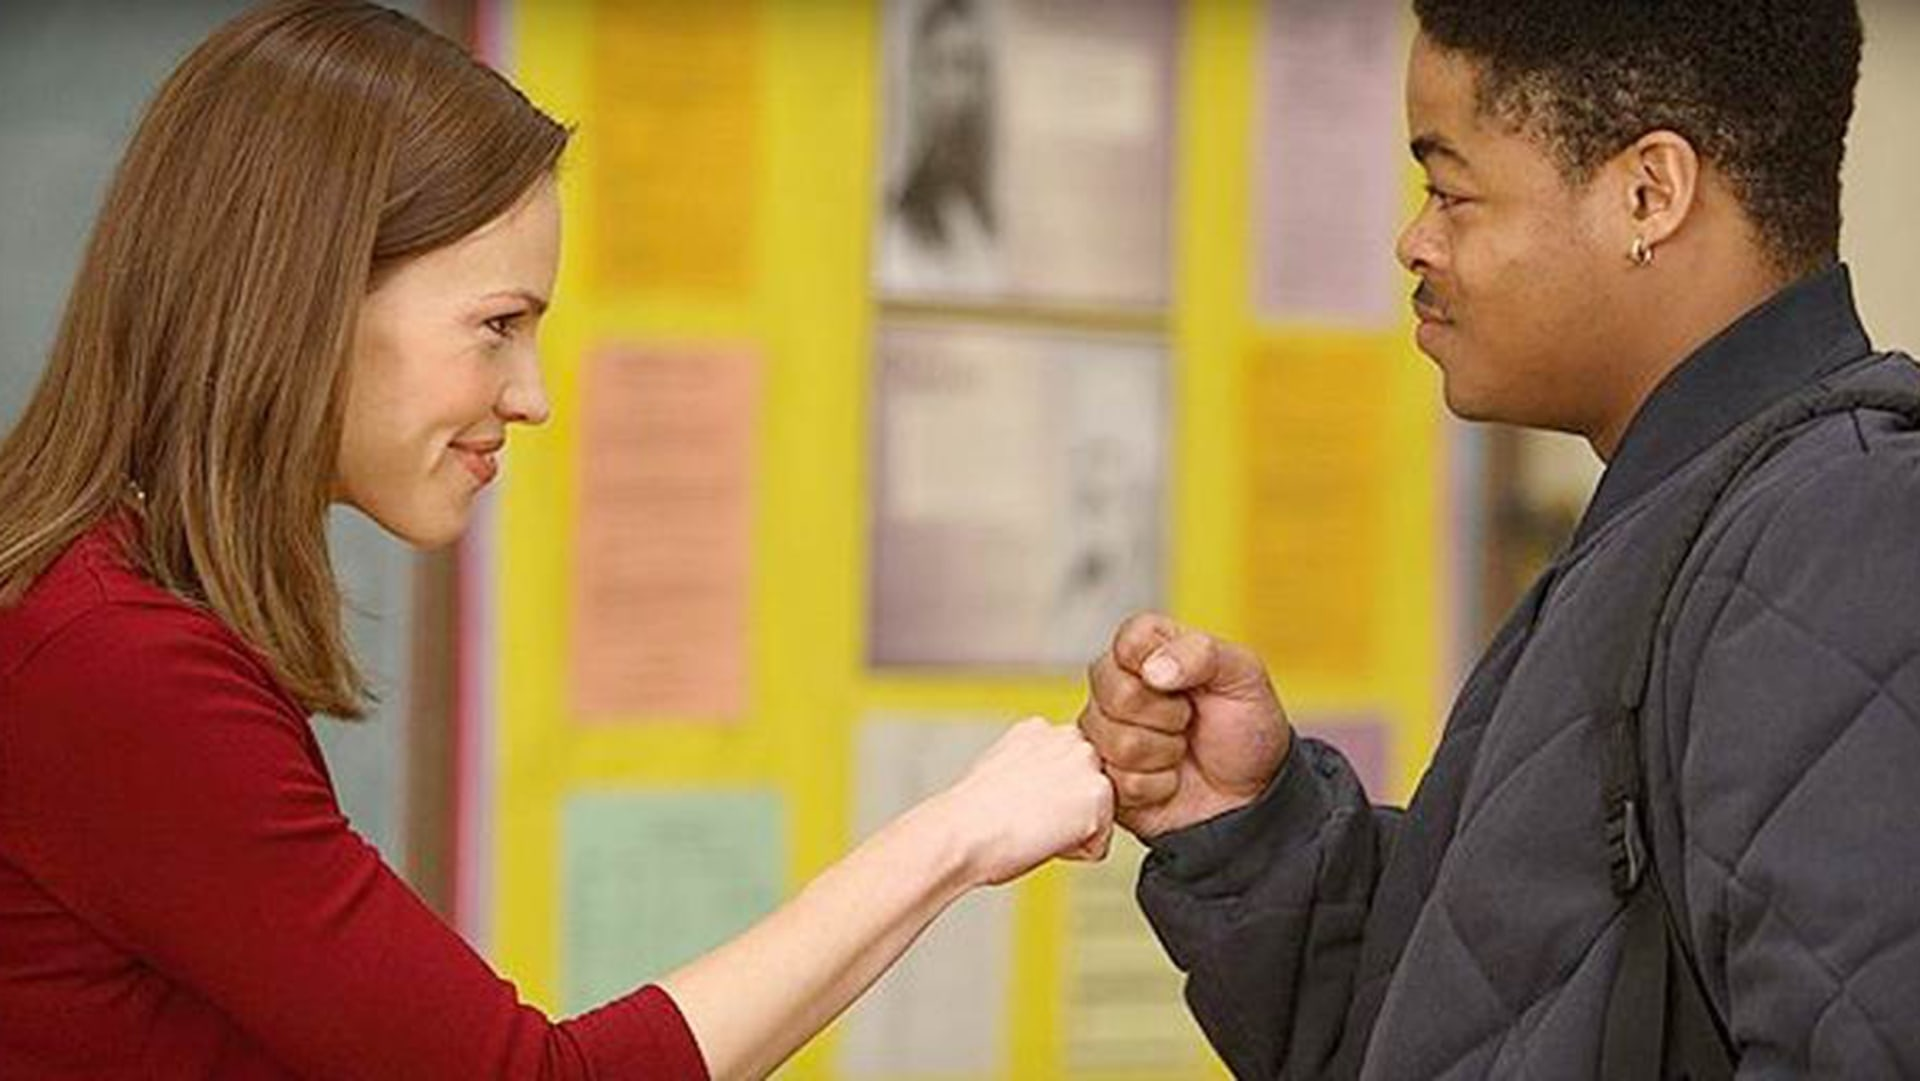 a review of the film freedom writers Hilary swank plays an inspirational teacher challenging dangerous minds in freedom writers, a true-story drama set in southern california in the 90s erin's new class is a hotbed of racial tension.